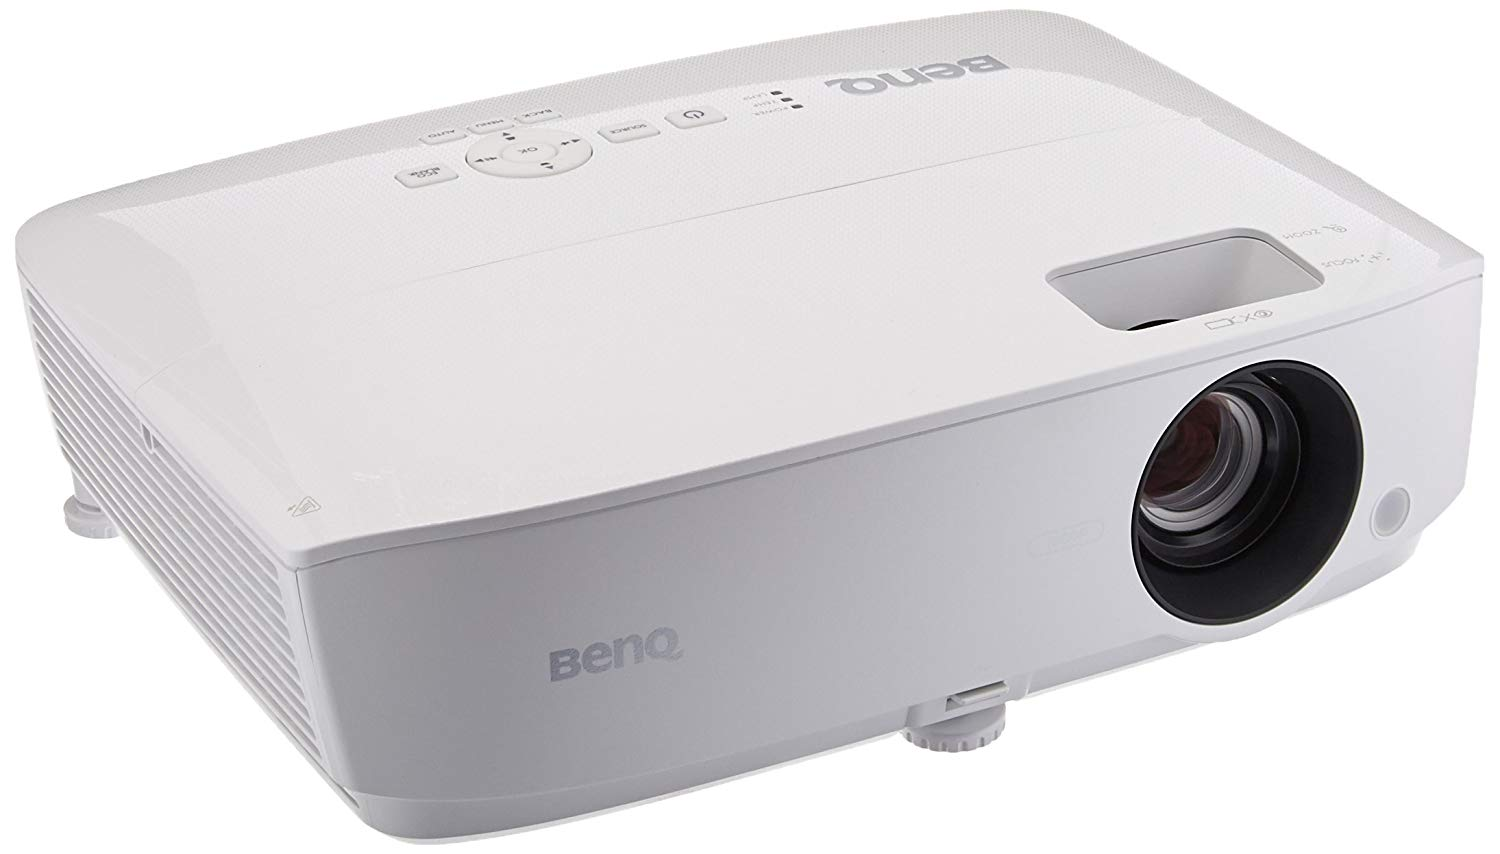 BenQ MH530FHD 1080P Home Theater Projector - Projectors for Conference Room